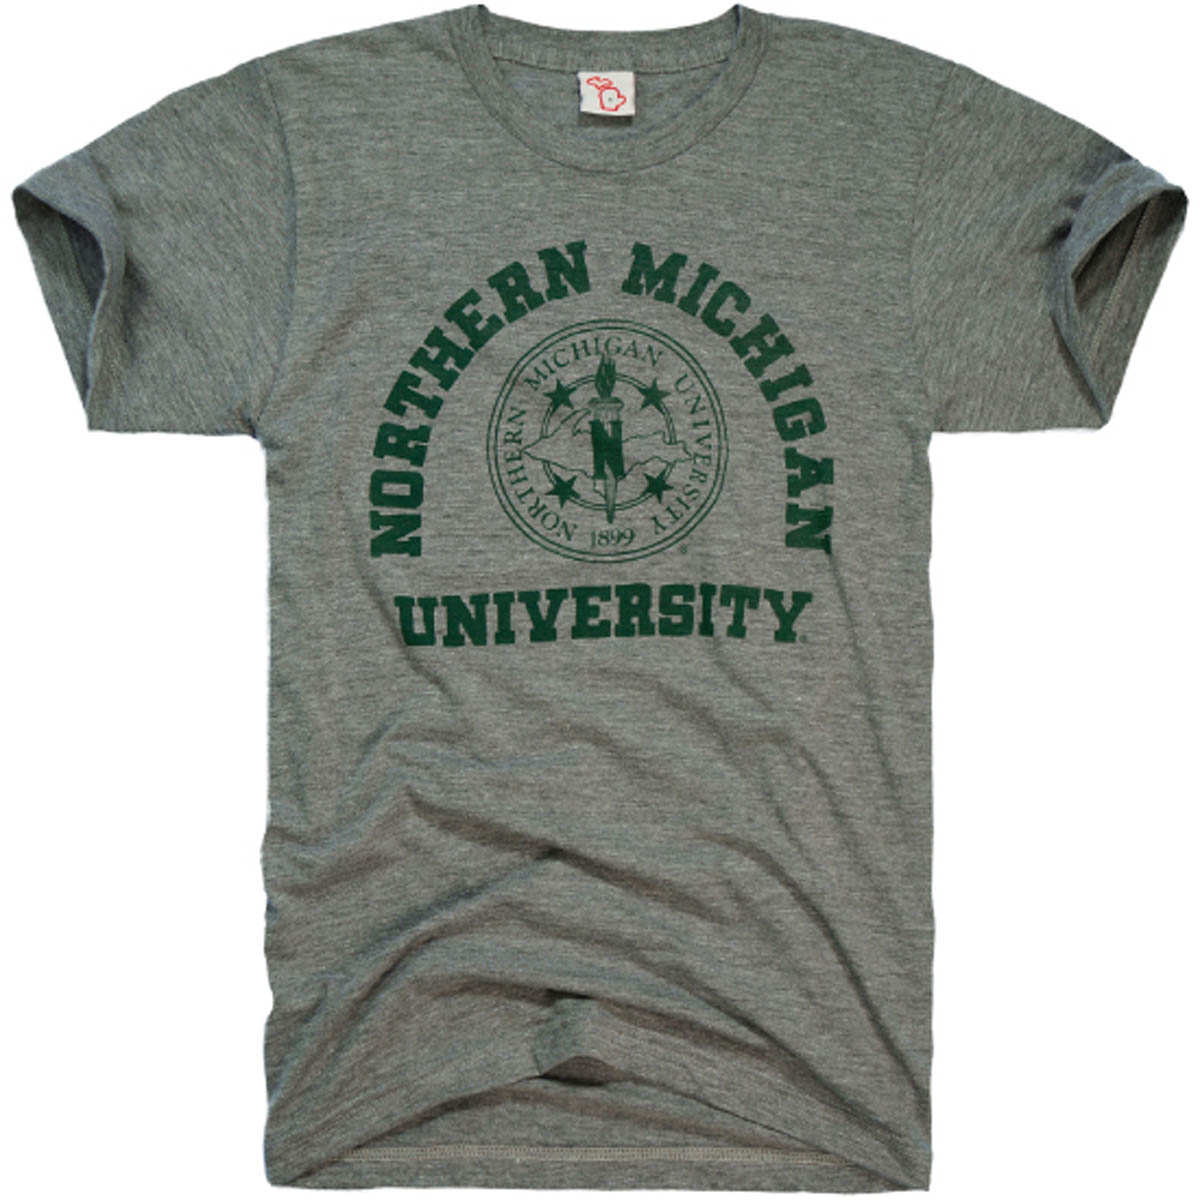 The Mitten State Men's NMU Seal